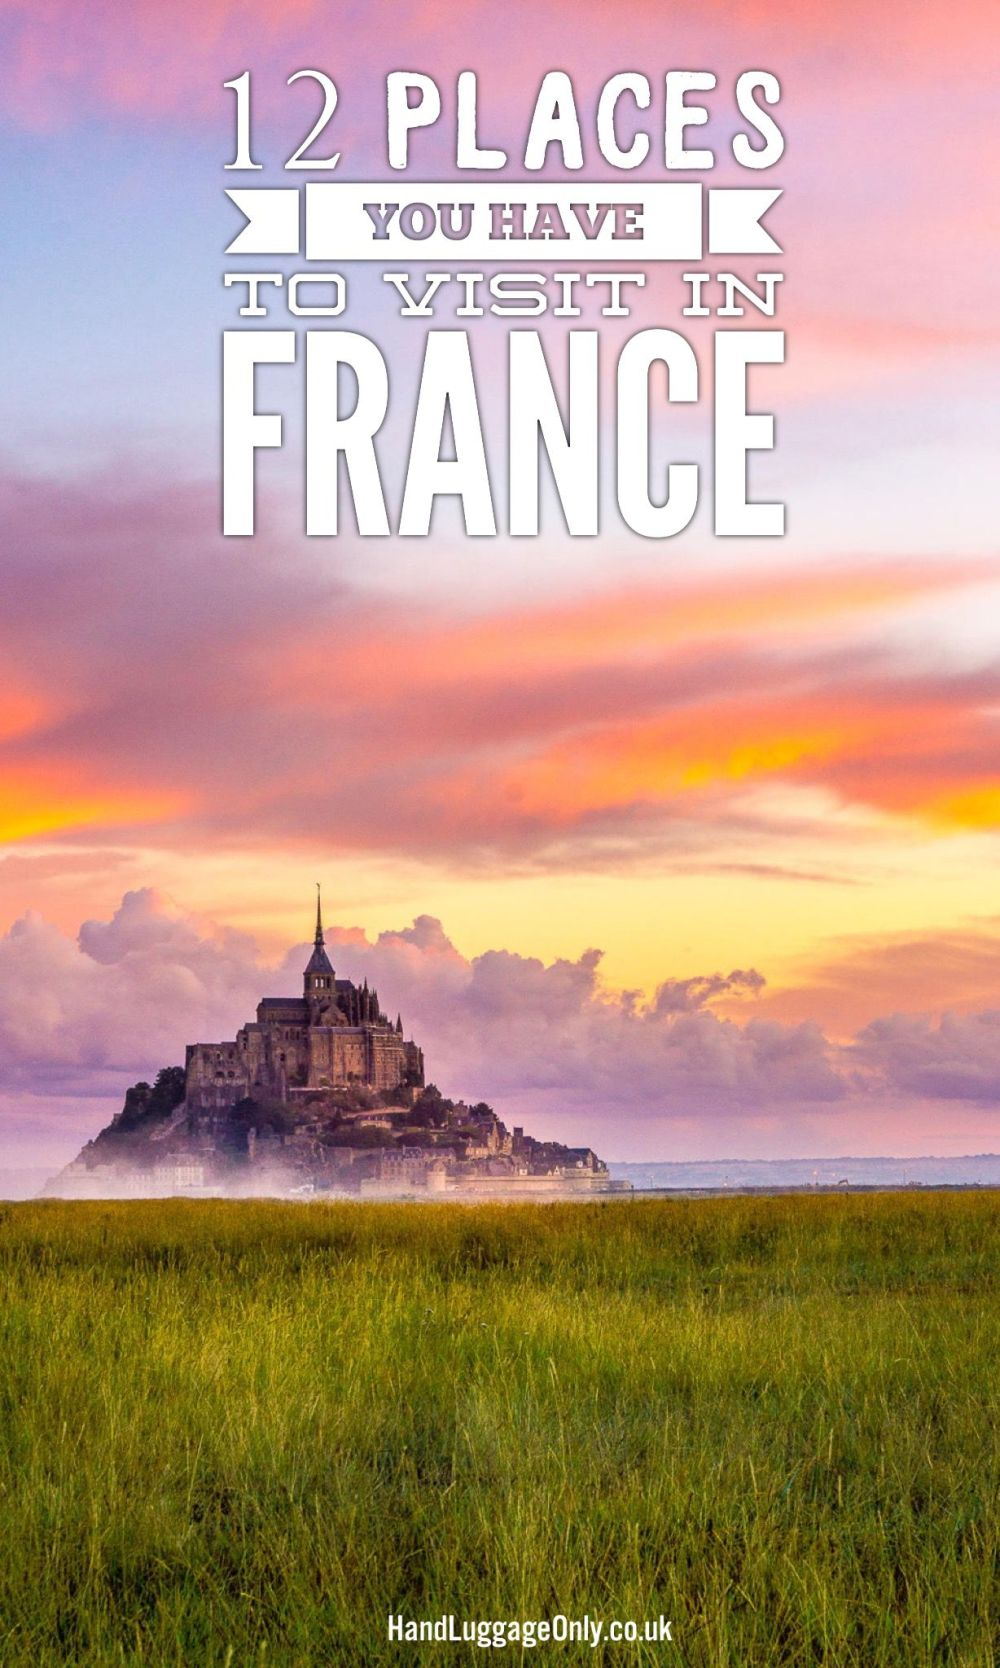 12 Places You Have To Visit In France And Why!